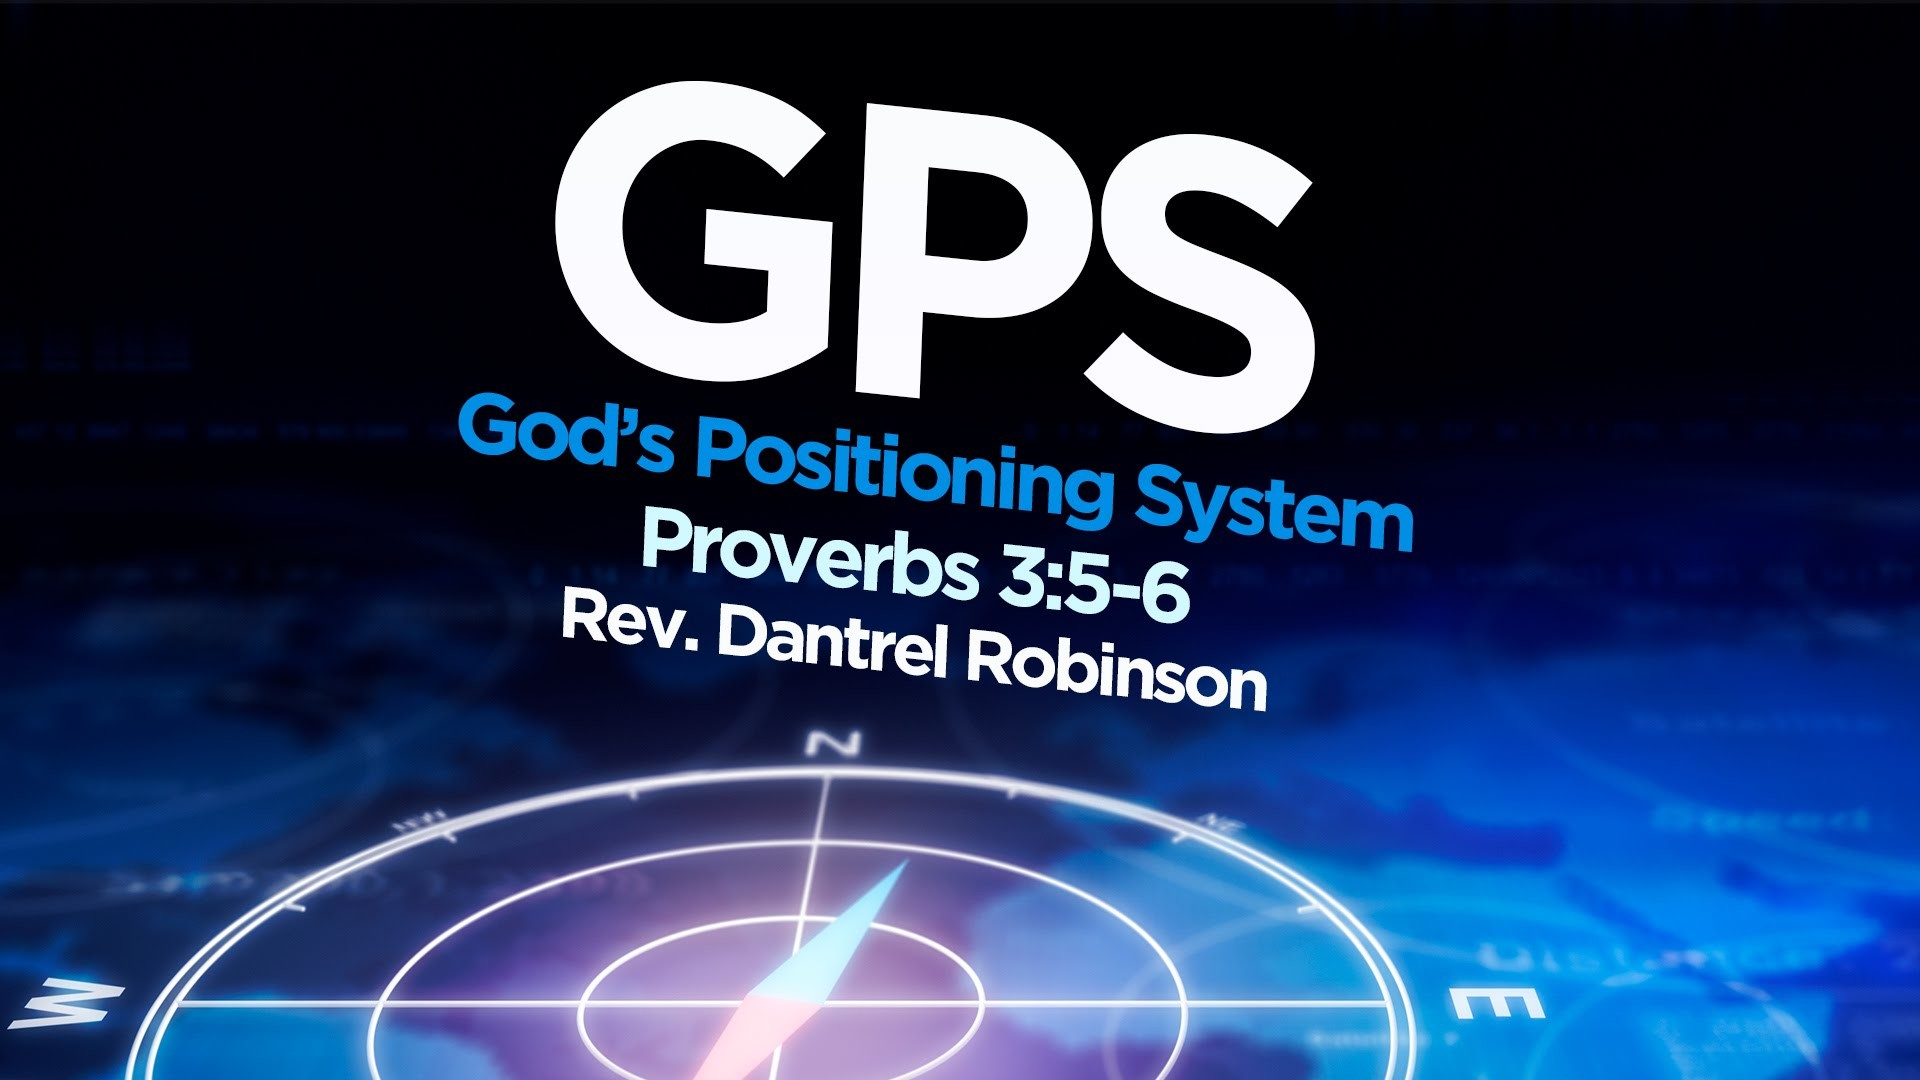 1920x1080 God's Positioning System • Proverbs 3:5-6 • The Antioch M.B. Church